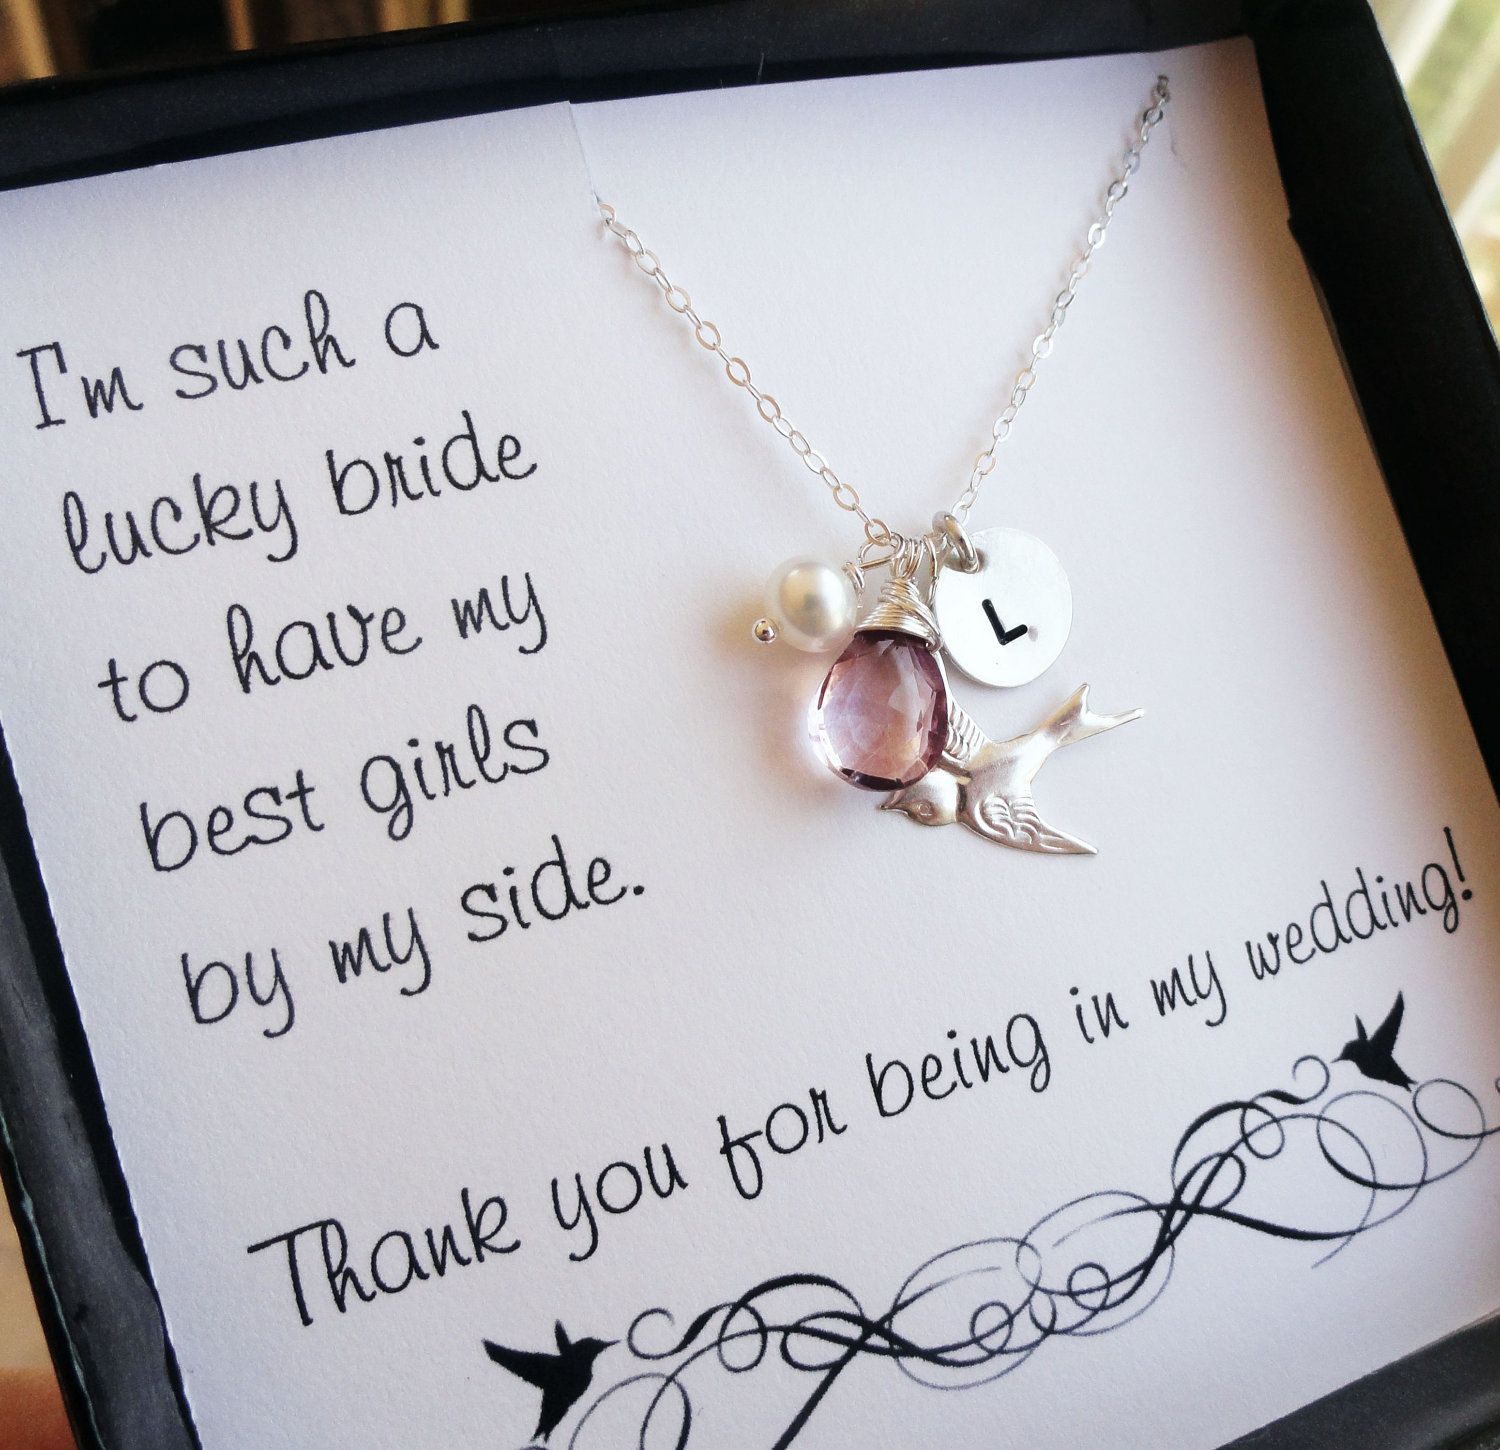 Bridesmaid thank you cards thank you for being in by BriguysGirls